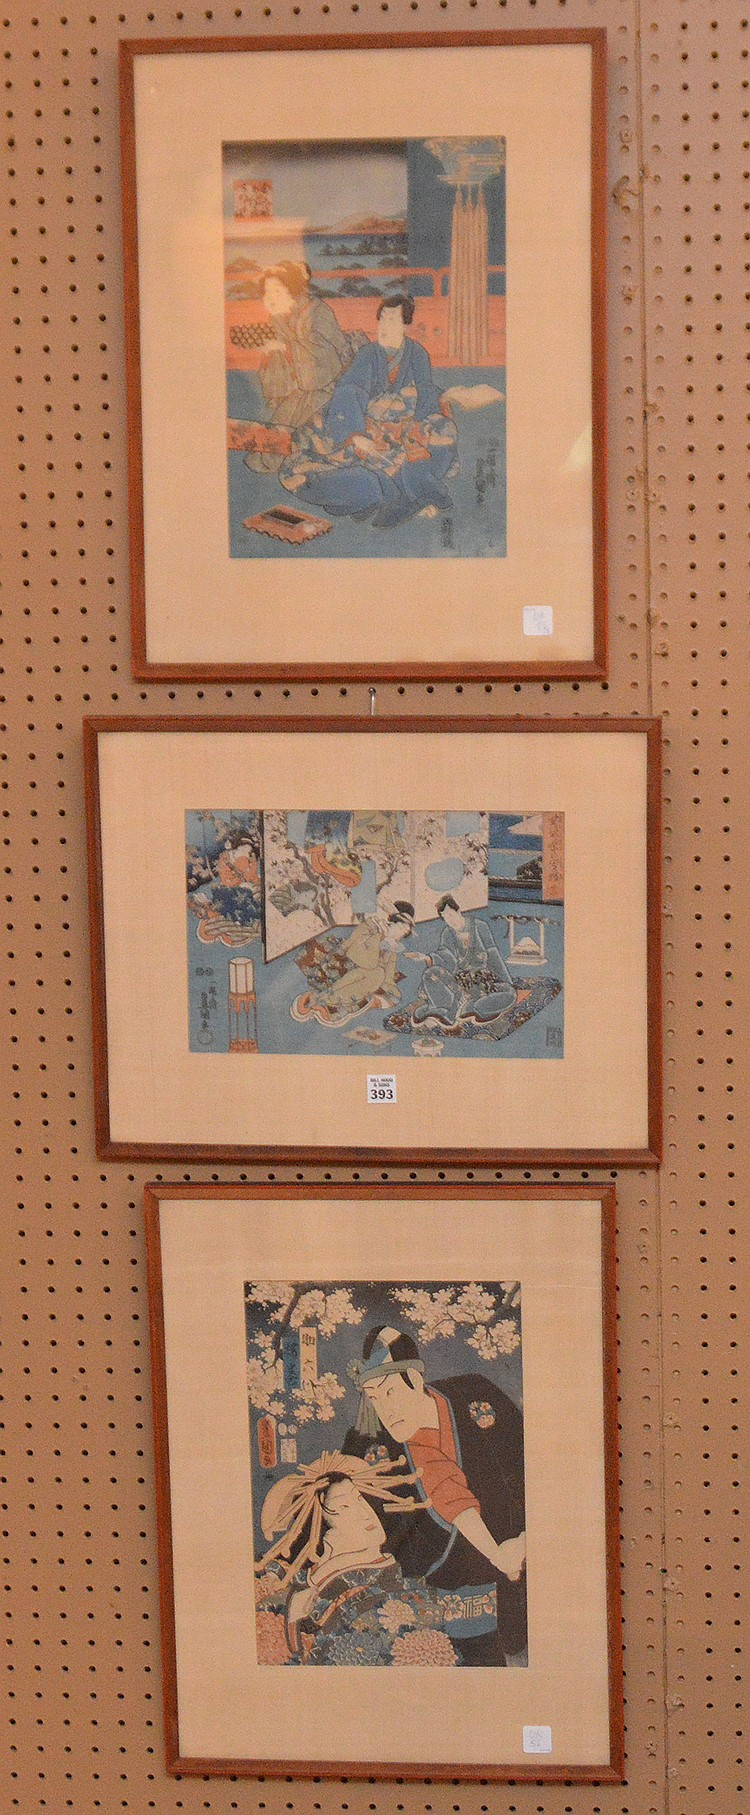 3 Japanese woodblock Prints sold together: approx. 13inches x 9inches each